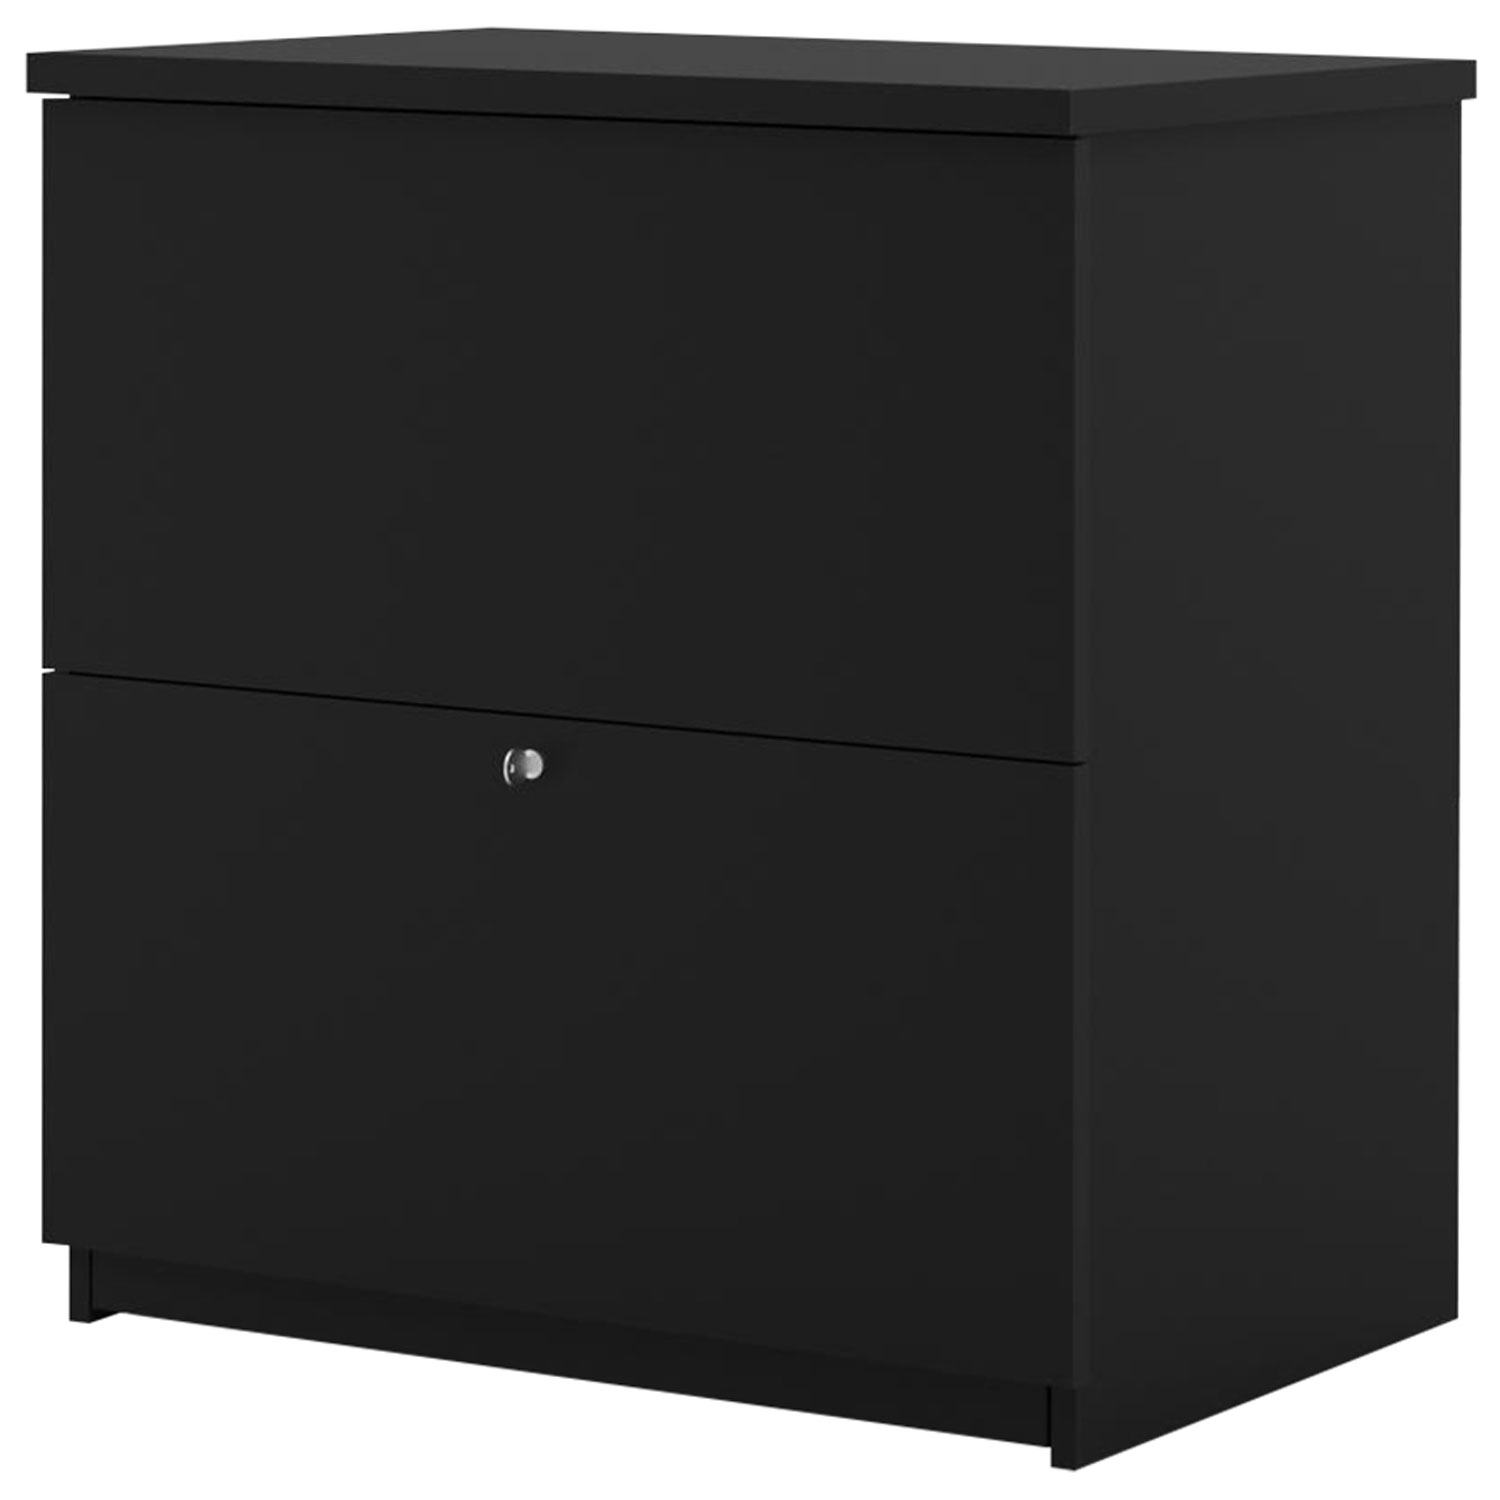 Picture of: Bestar Standard 2 Drawer Lateral File Cabinet Black Best Buy Canada